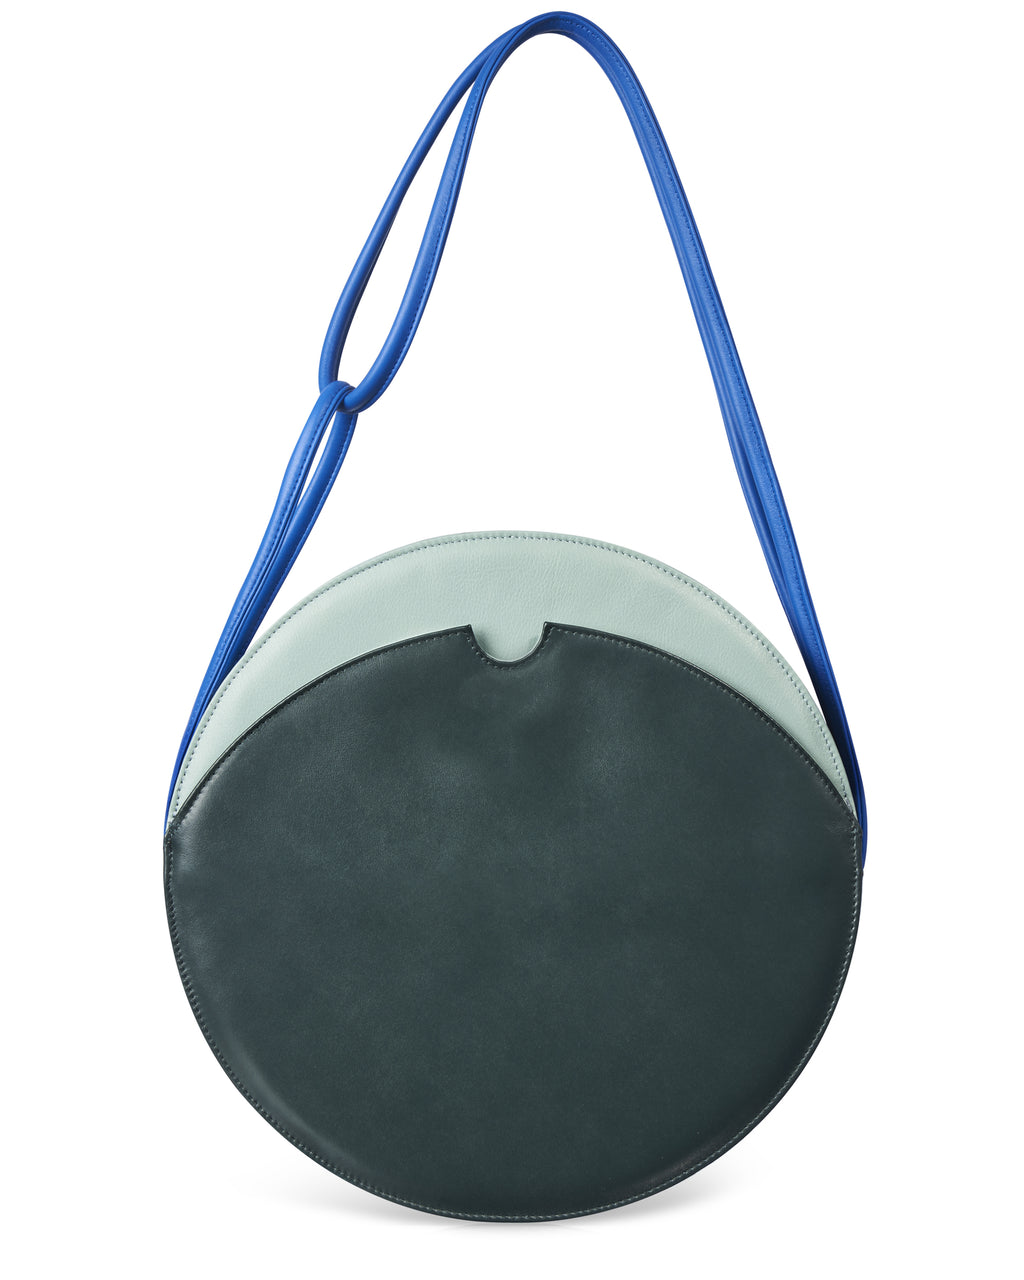 MANJERICA OLIVIA FOREST Round Shape Shoulder Bag in Leather